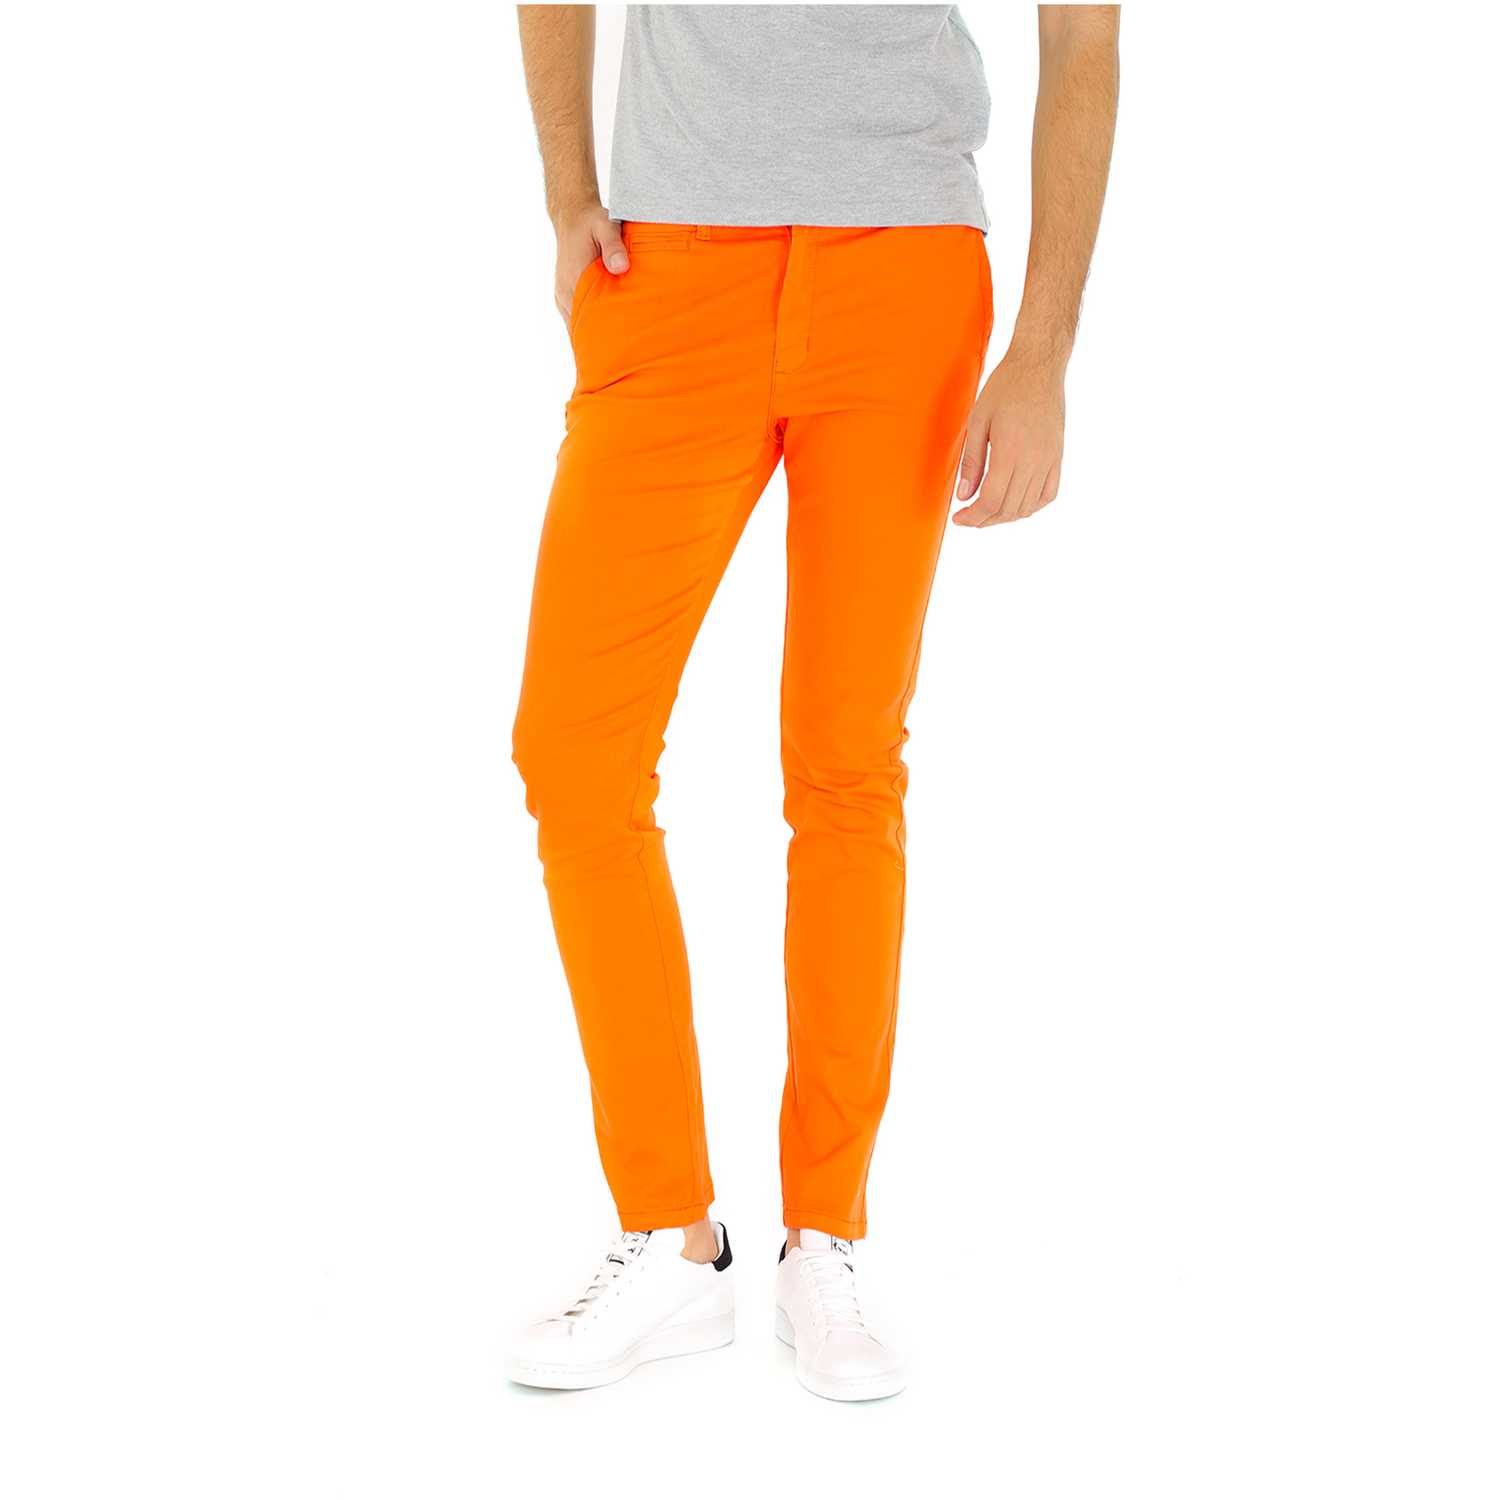 COTTONS JEANS andres Naranja Casual